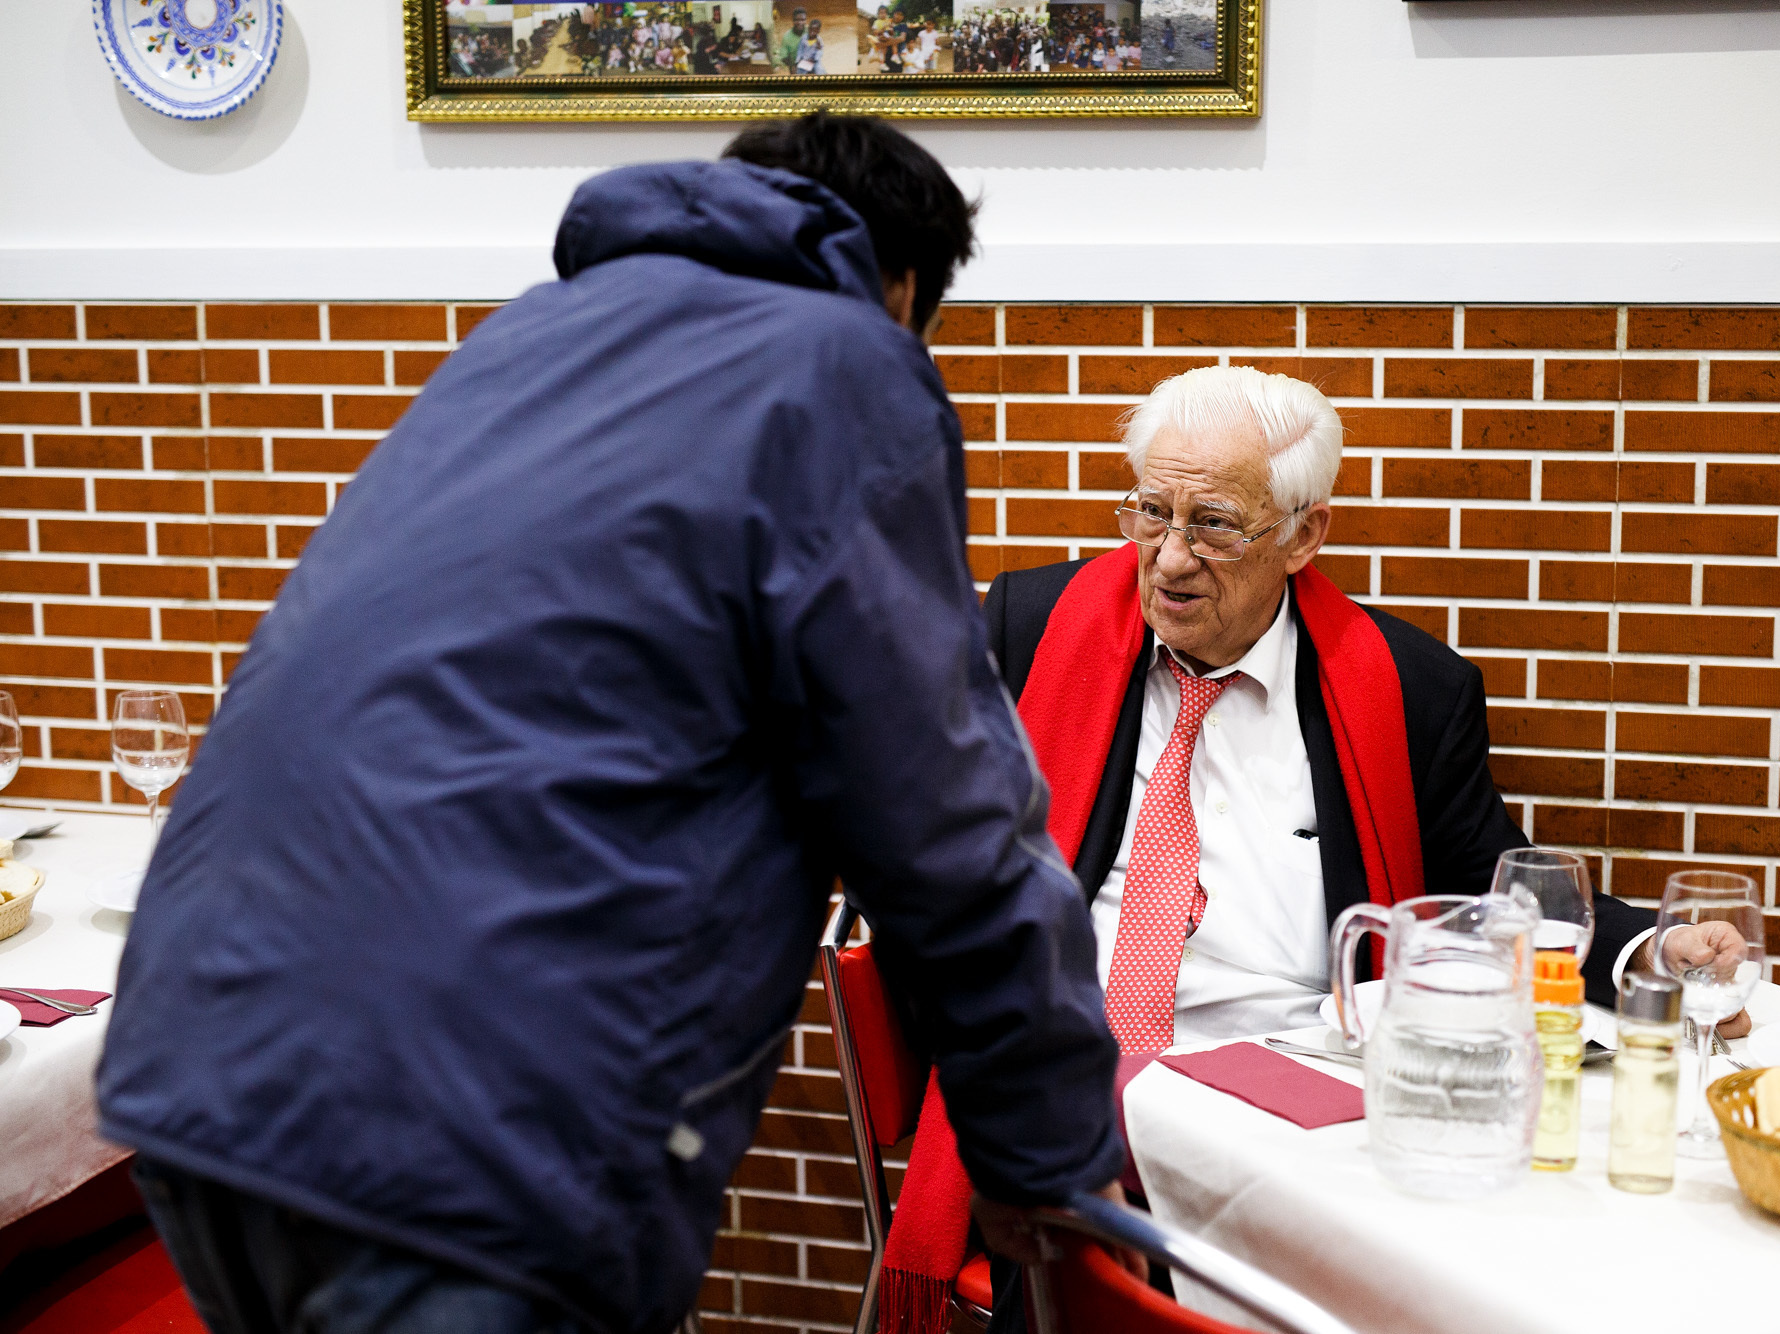 """A dinner patron chats with Father Angel (right), who says that he wants homeless people to """"eat with the same dignity as any other customer."""""""